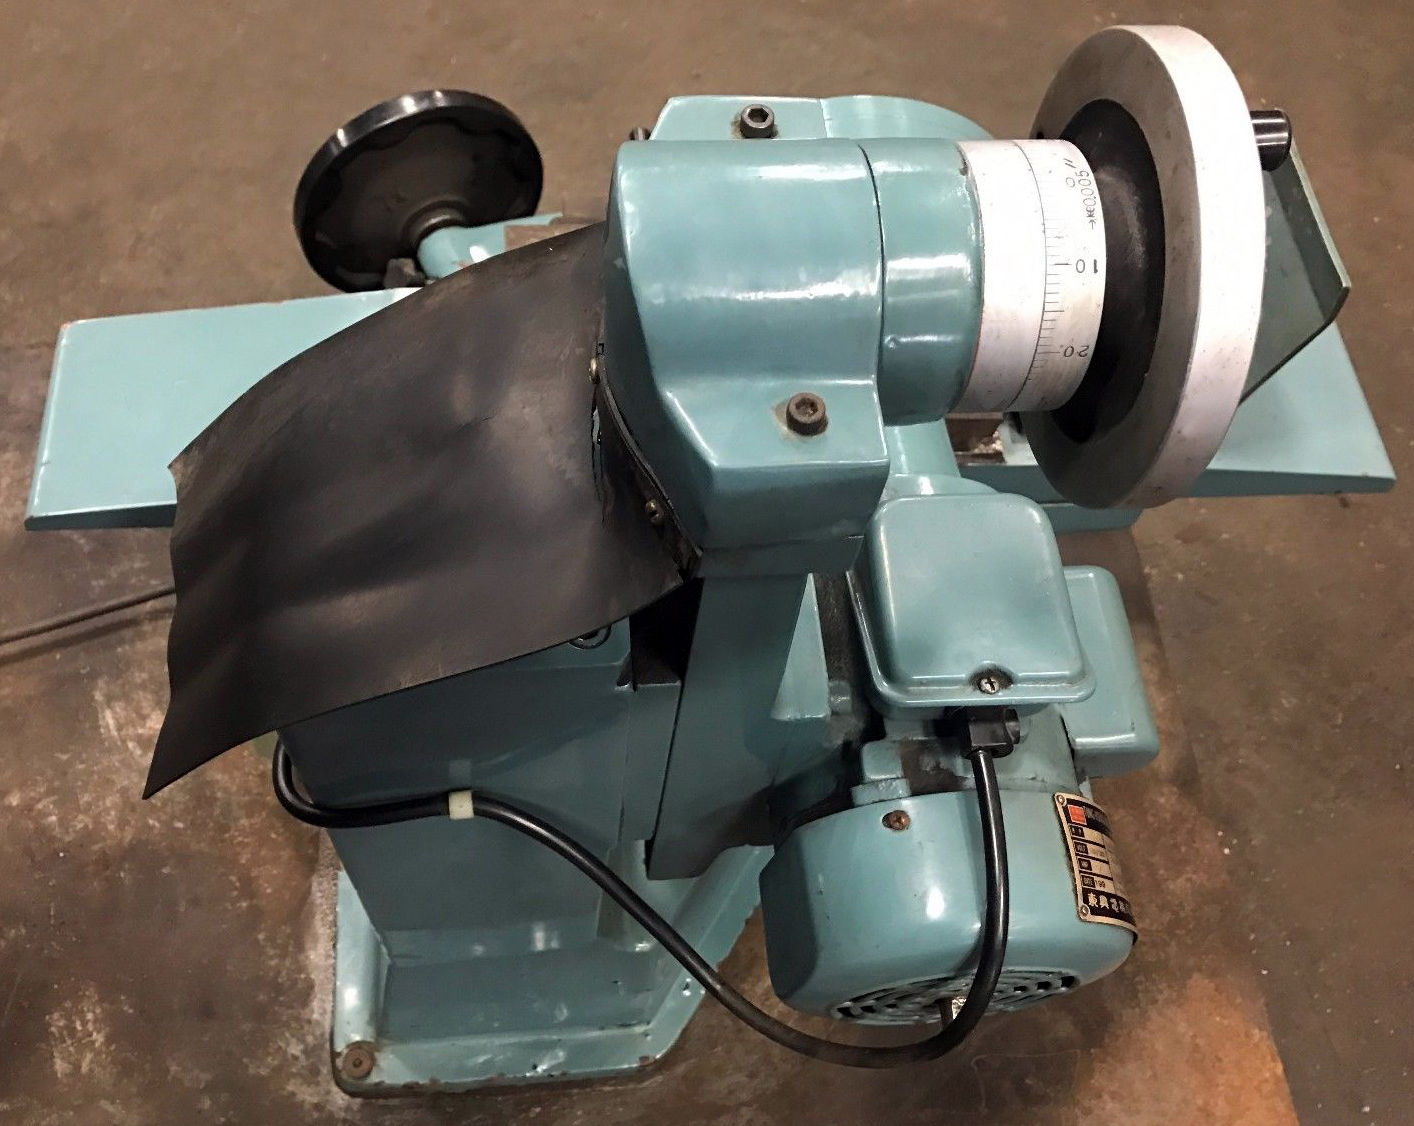 Delightful Bench Surface Grinder Part - 6: Other, Larger, Hand-operated Surface Grinders Commonly Found Include The 2B  And 2LB Brown U0026 Sharpe Models, The Capco, Eagle, Superior, Feinprüf, ...